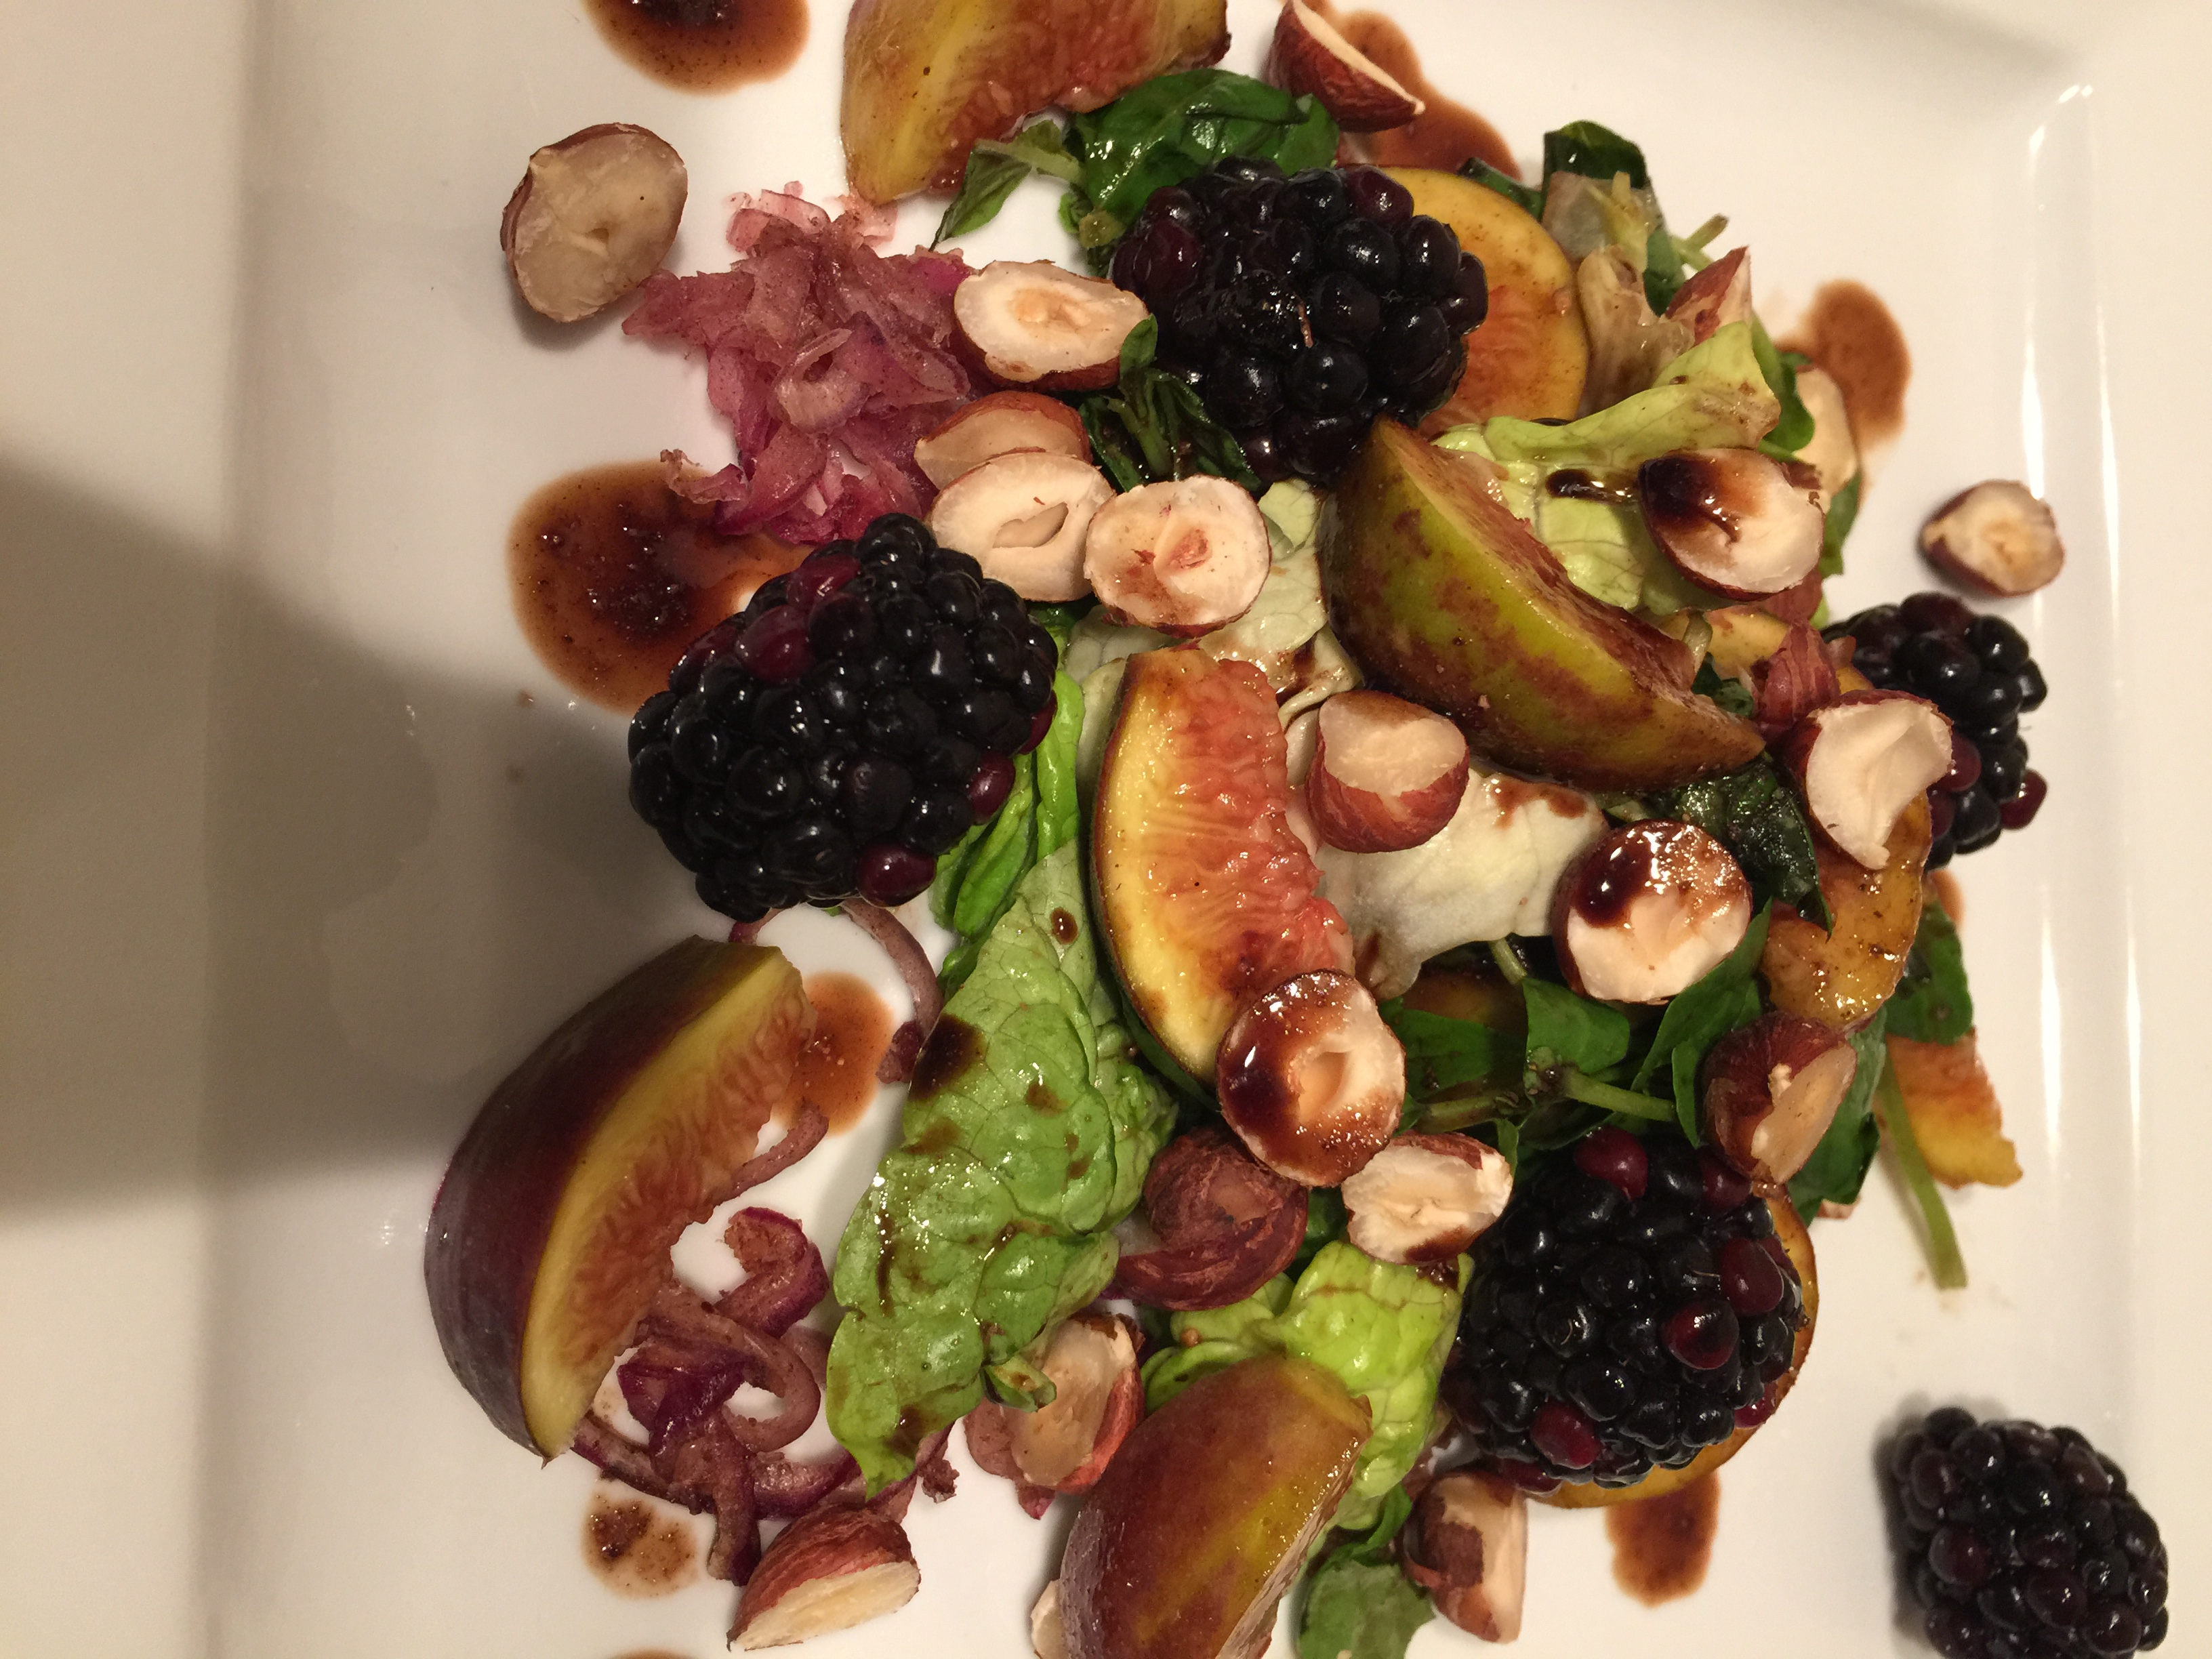 Fig and blackberry salad